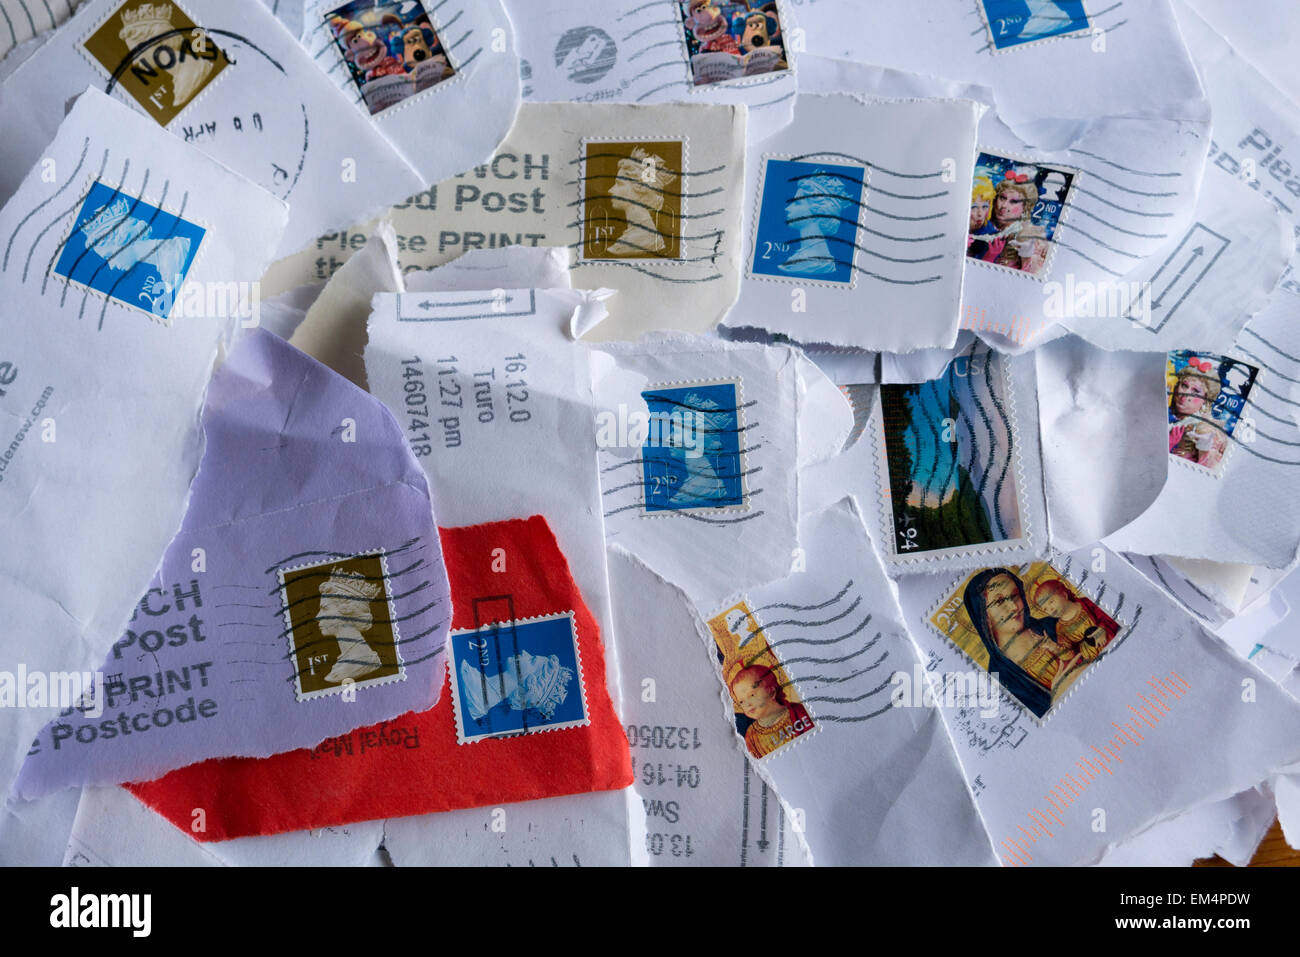 British postage stamps for recycling - Stock Image